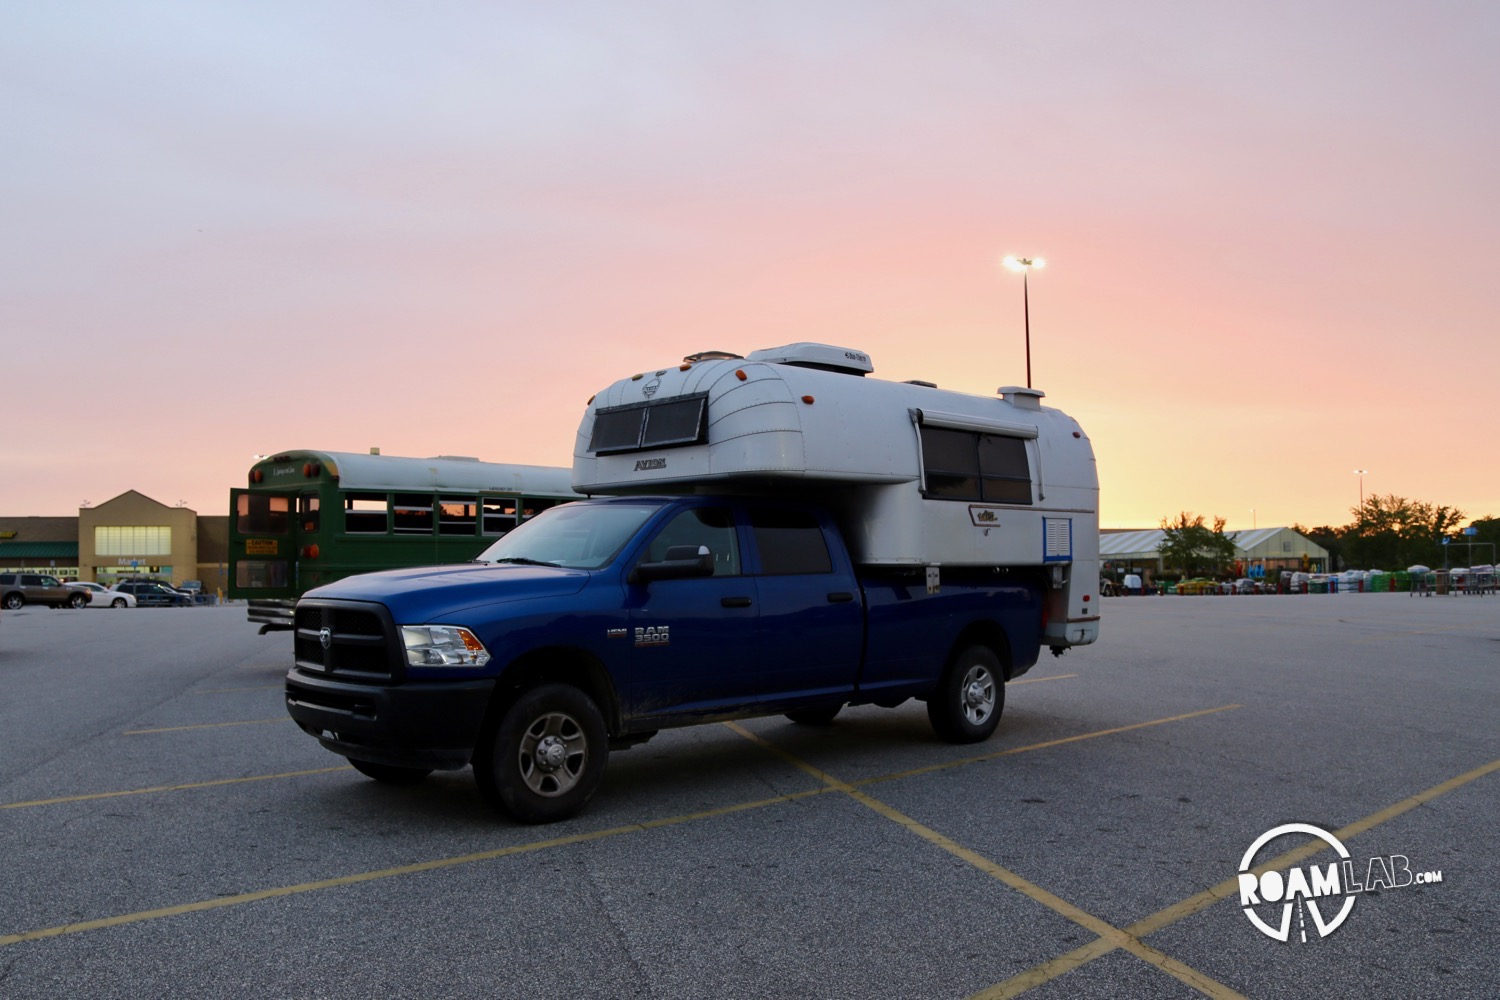 Sun setting over a 1970 Avion C11 truck camper parked in a Walmart Parking lot.